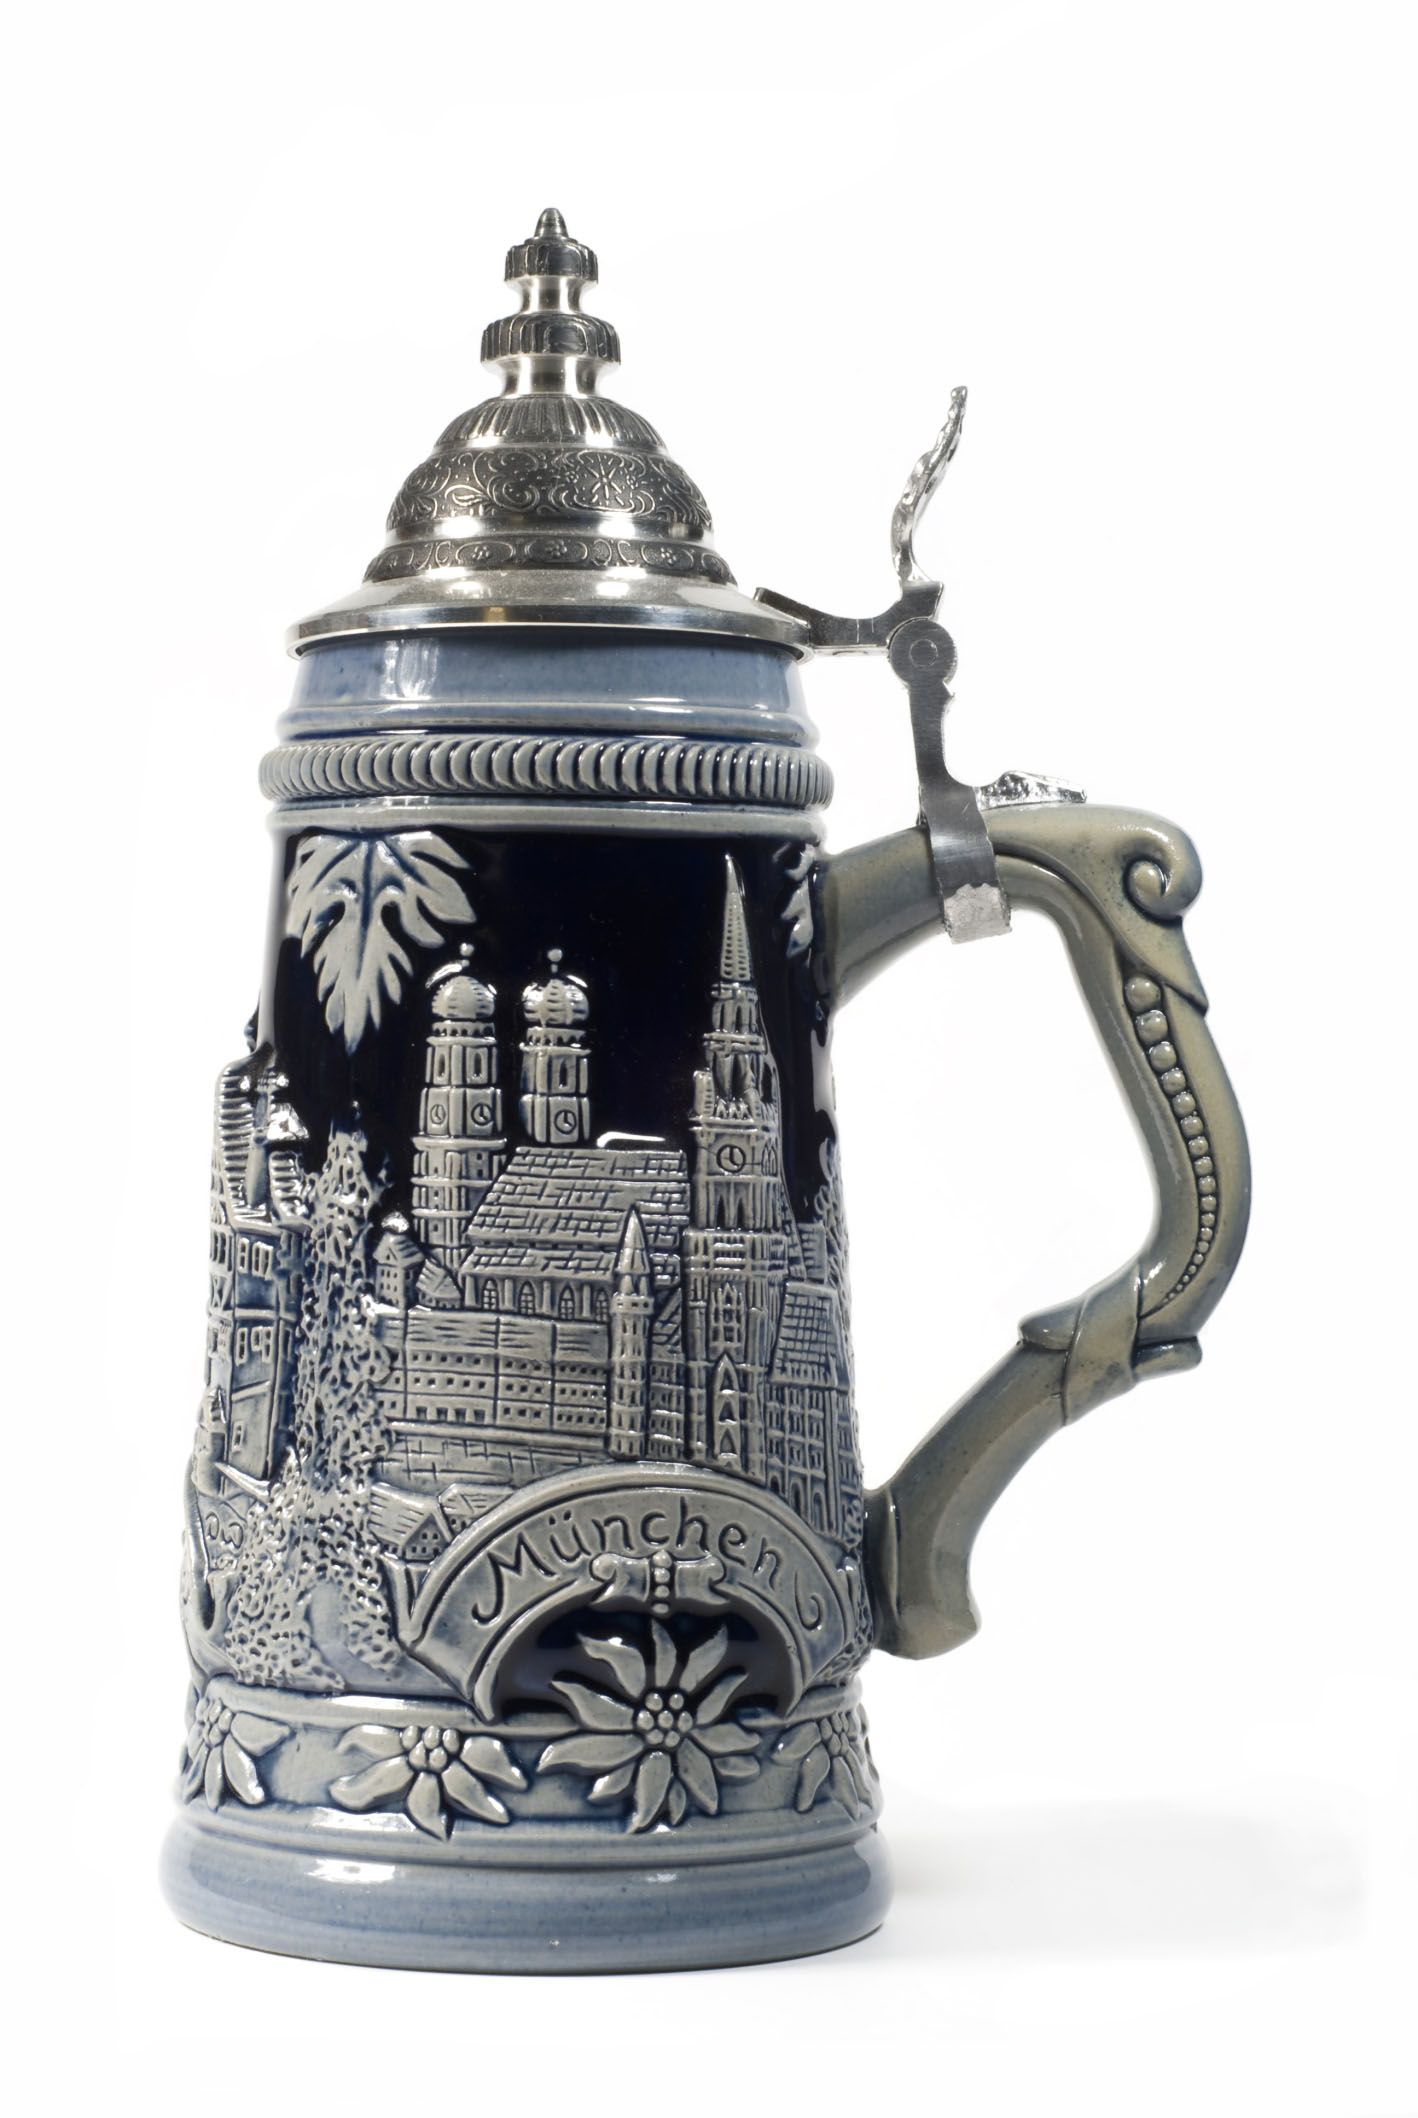 Photo of silver plated beer stein. Credit: Jupiter Images/Stockbyte.